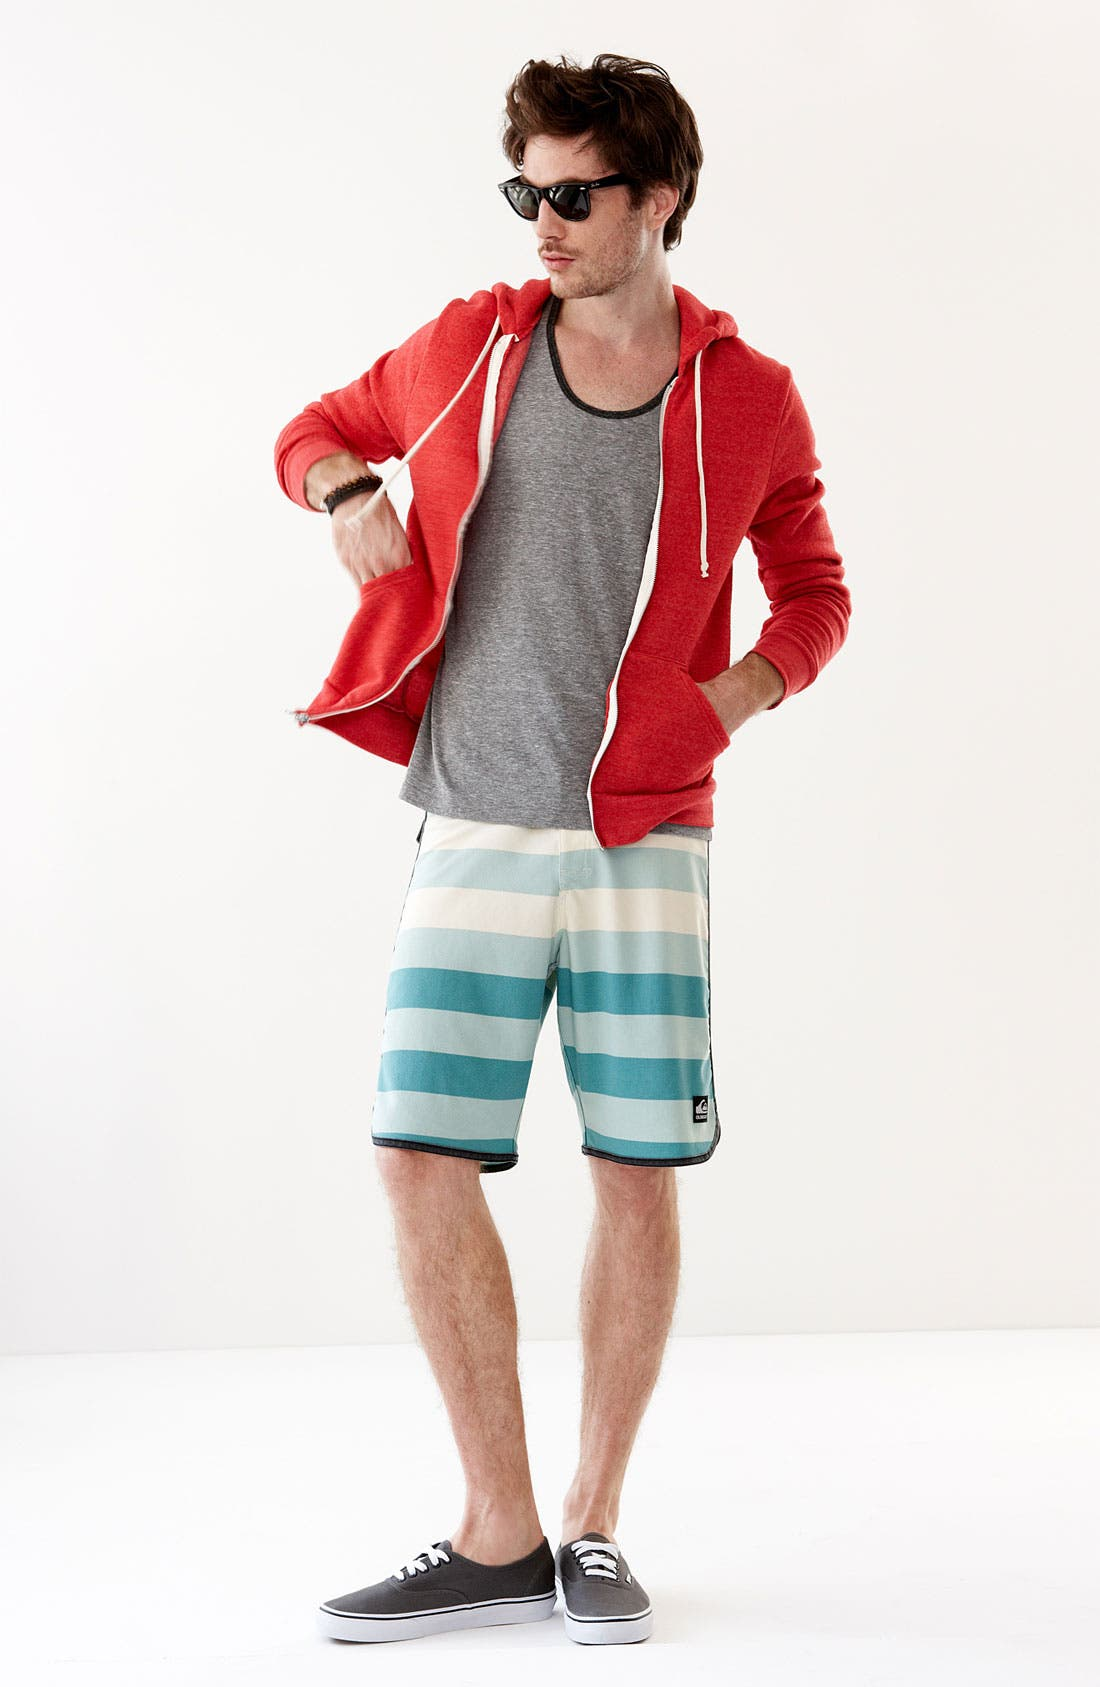 Main Image - Alternative Hoodie, The Rail by Public Opinion Tank Top & Quiksilver Board Shorts